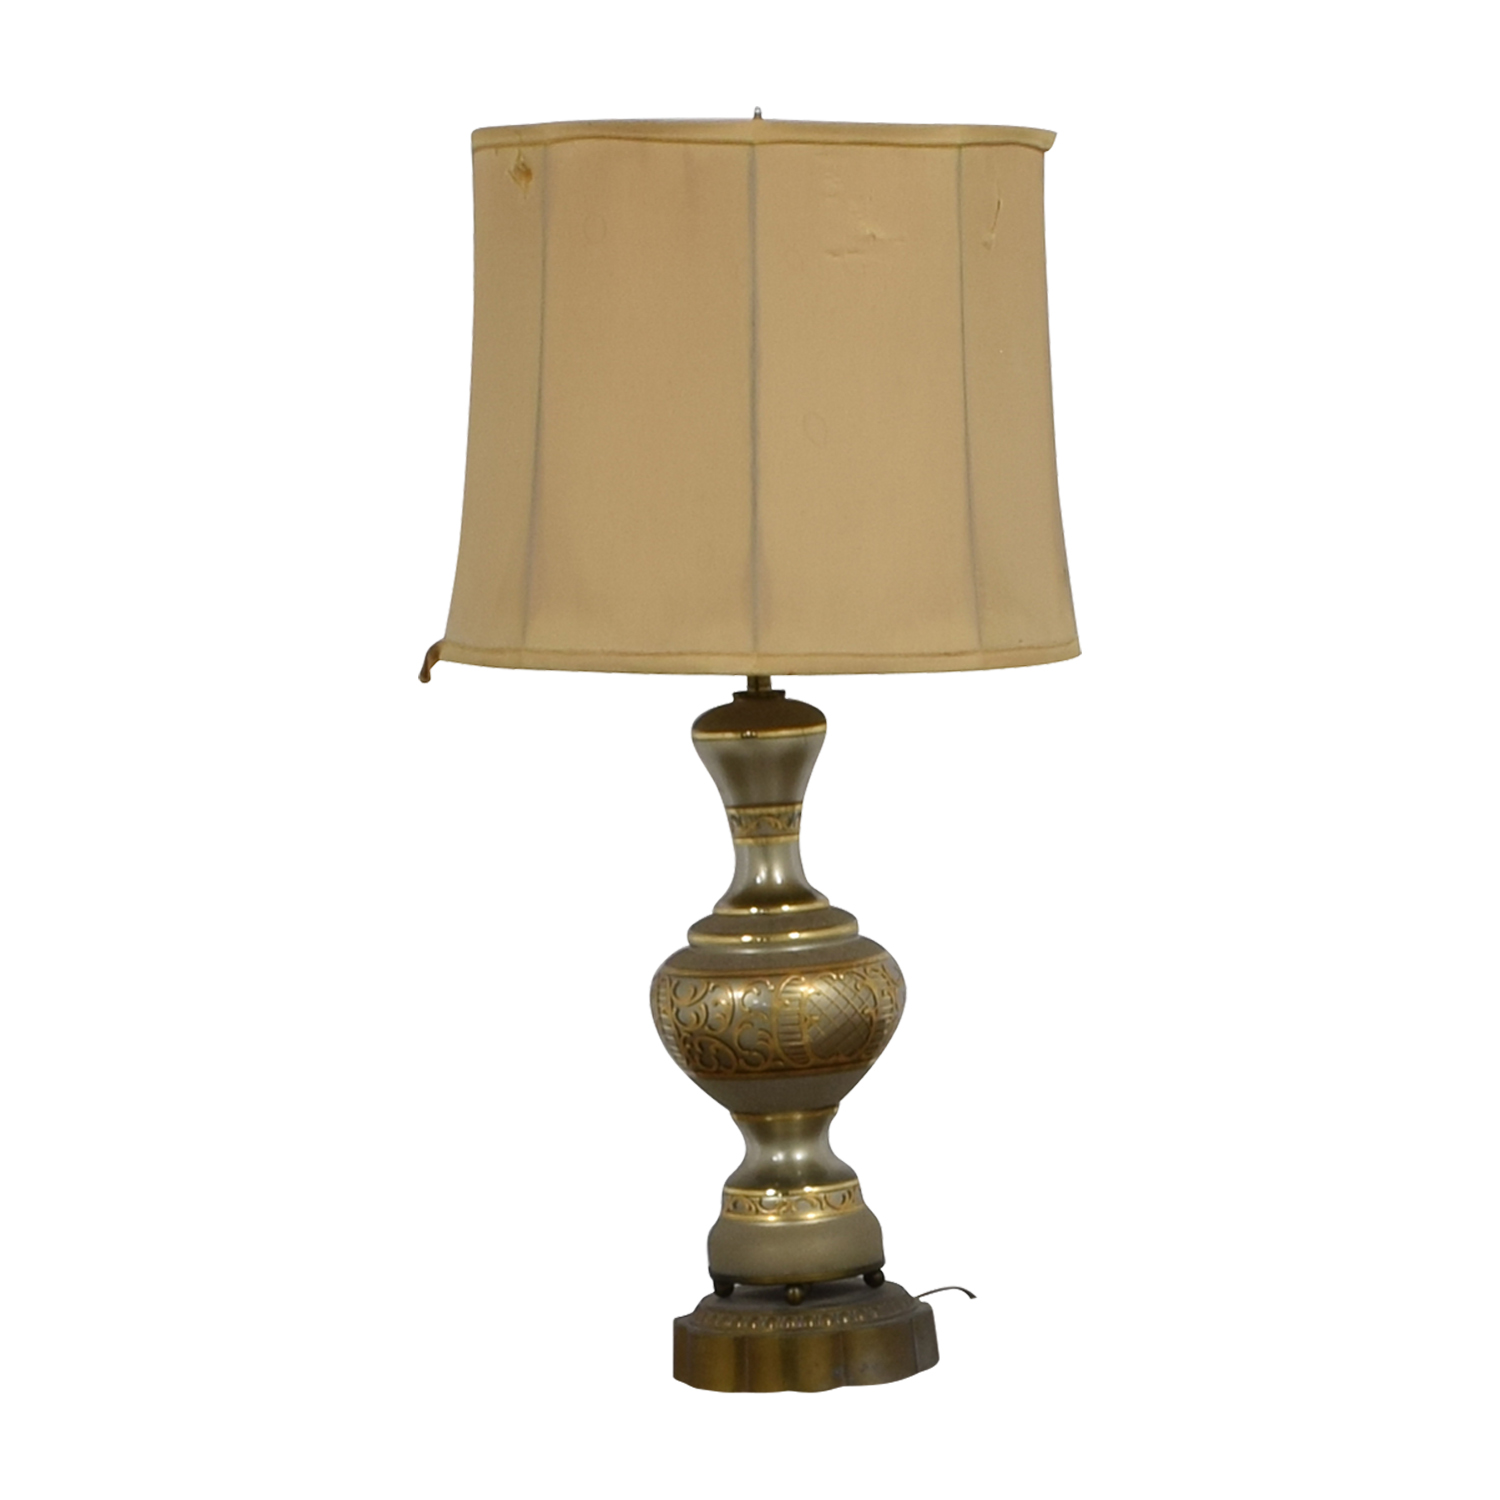 Vintage Mid-Century Gold Table Lamp coupon